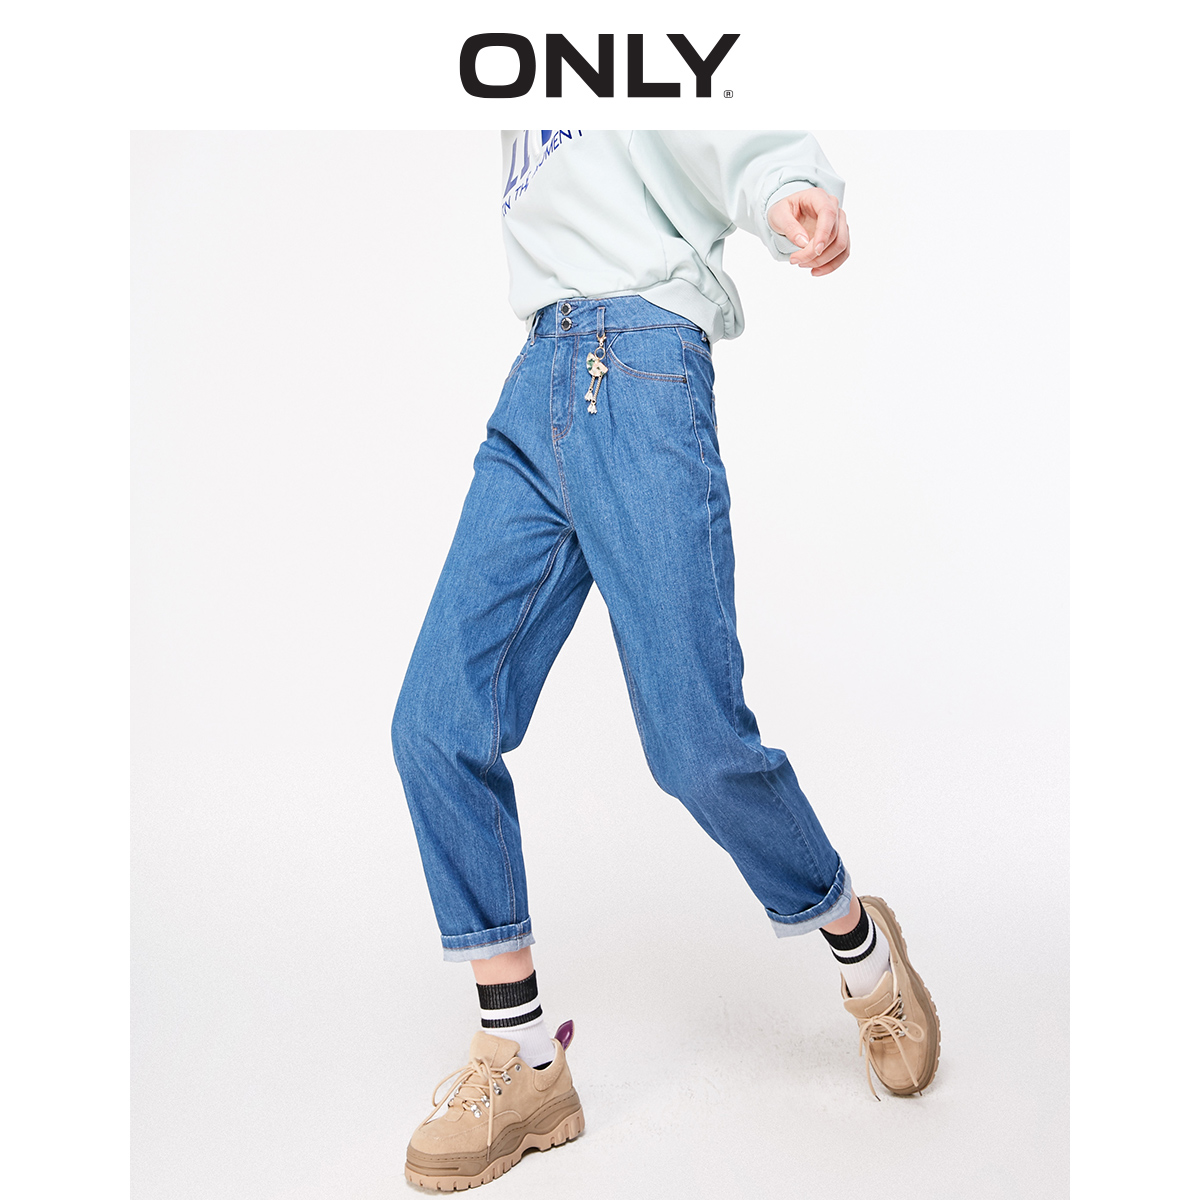 ONLY Women's  Loose Fit High-rise Crop Jeans   119149593